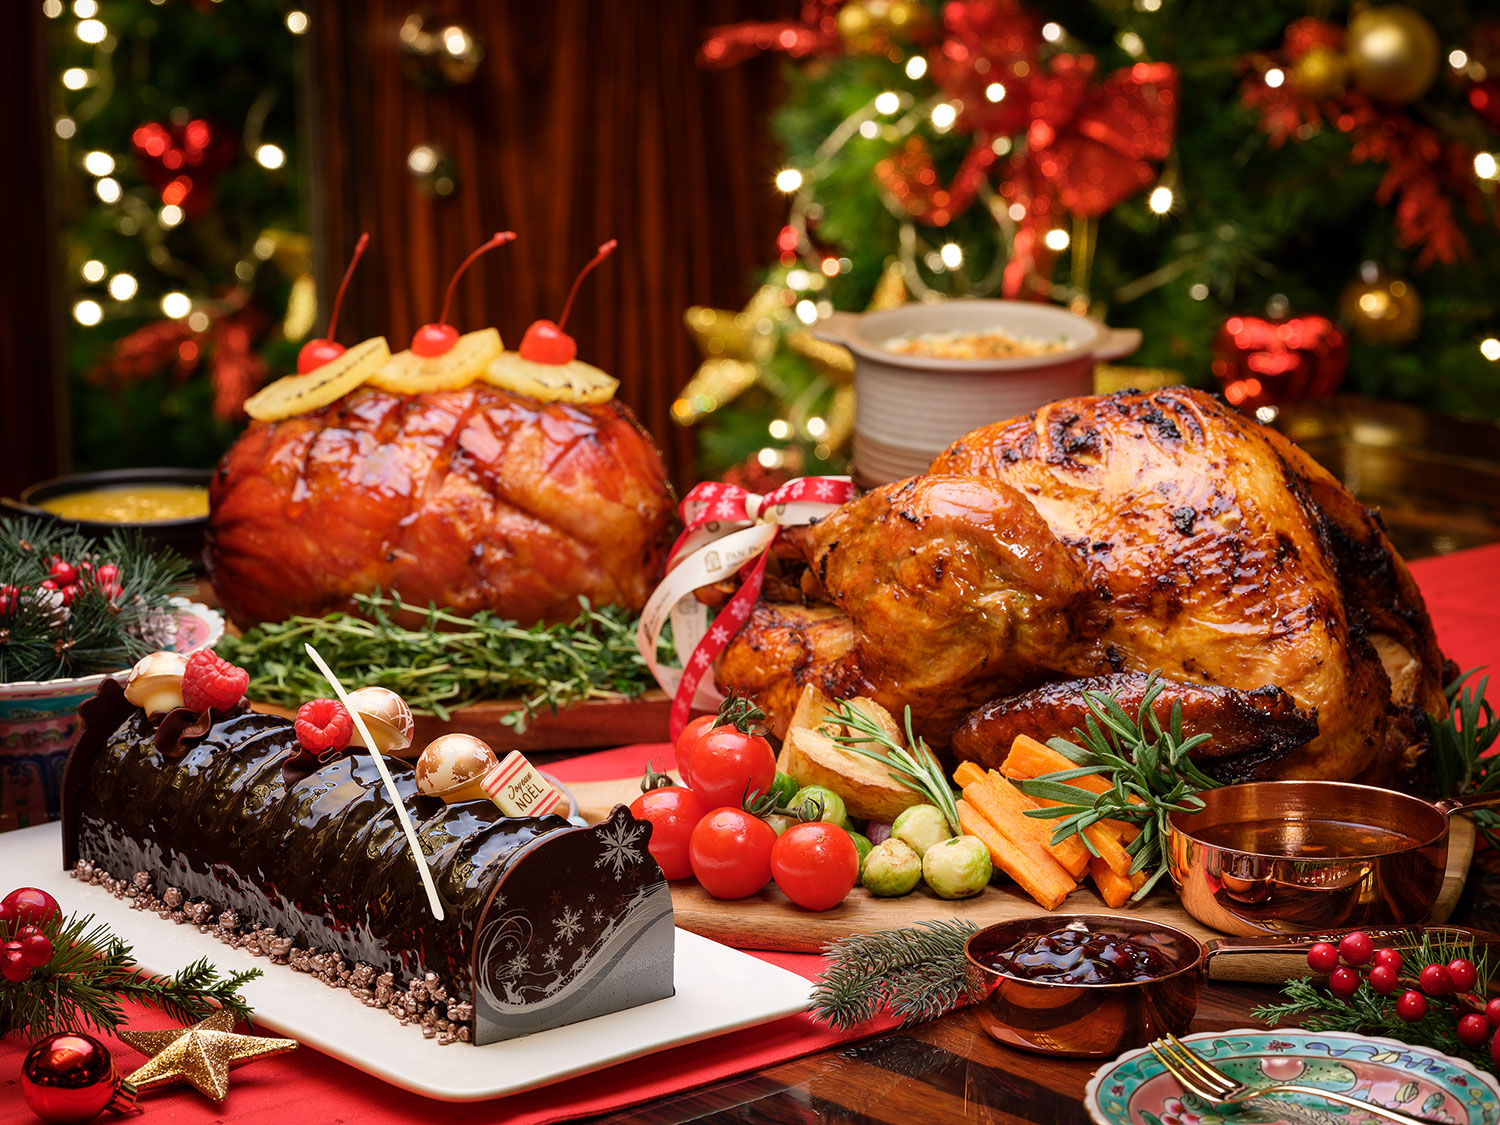 Christmas Dinner Recipes Wondering what to serve for your big feast? Betty's got recipes for succulent roasts, impressive pasta dishes and more to make your merriest meal yet.